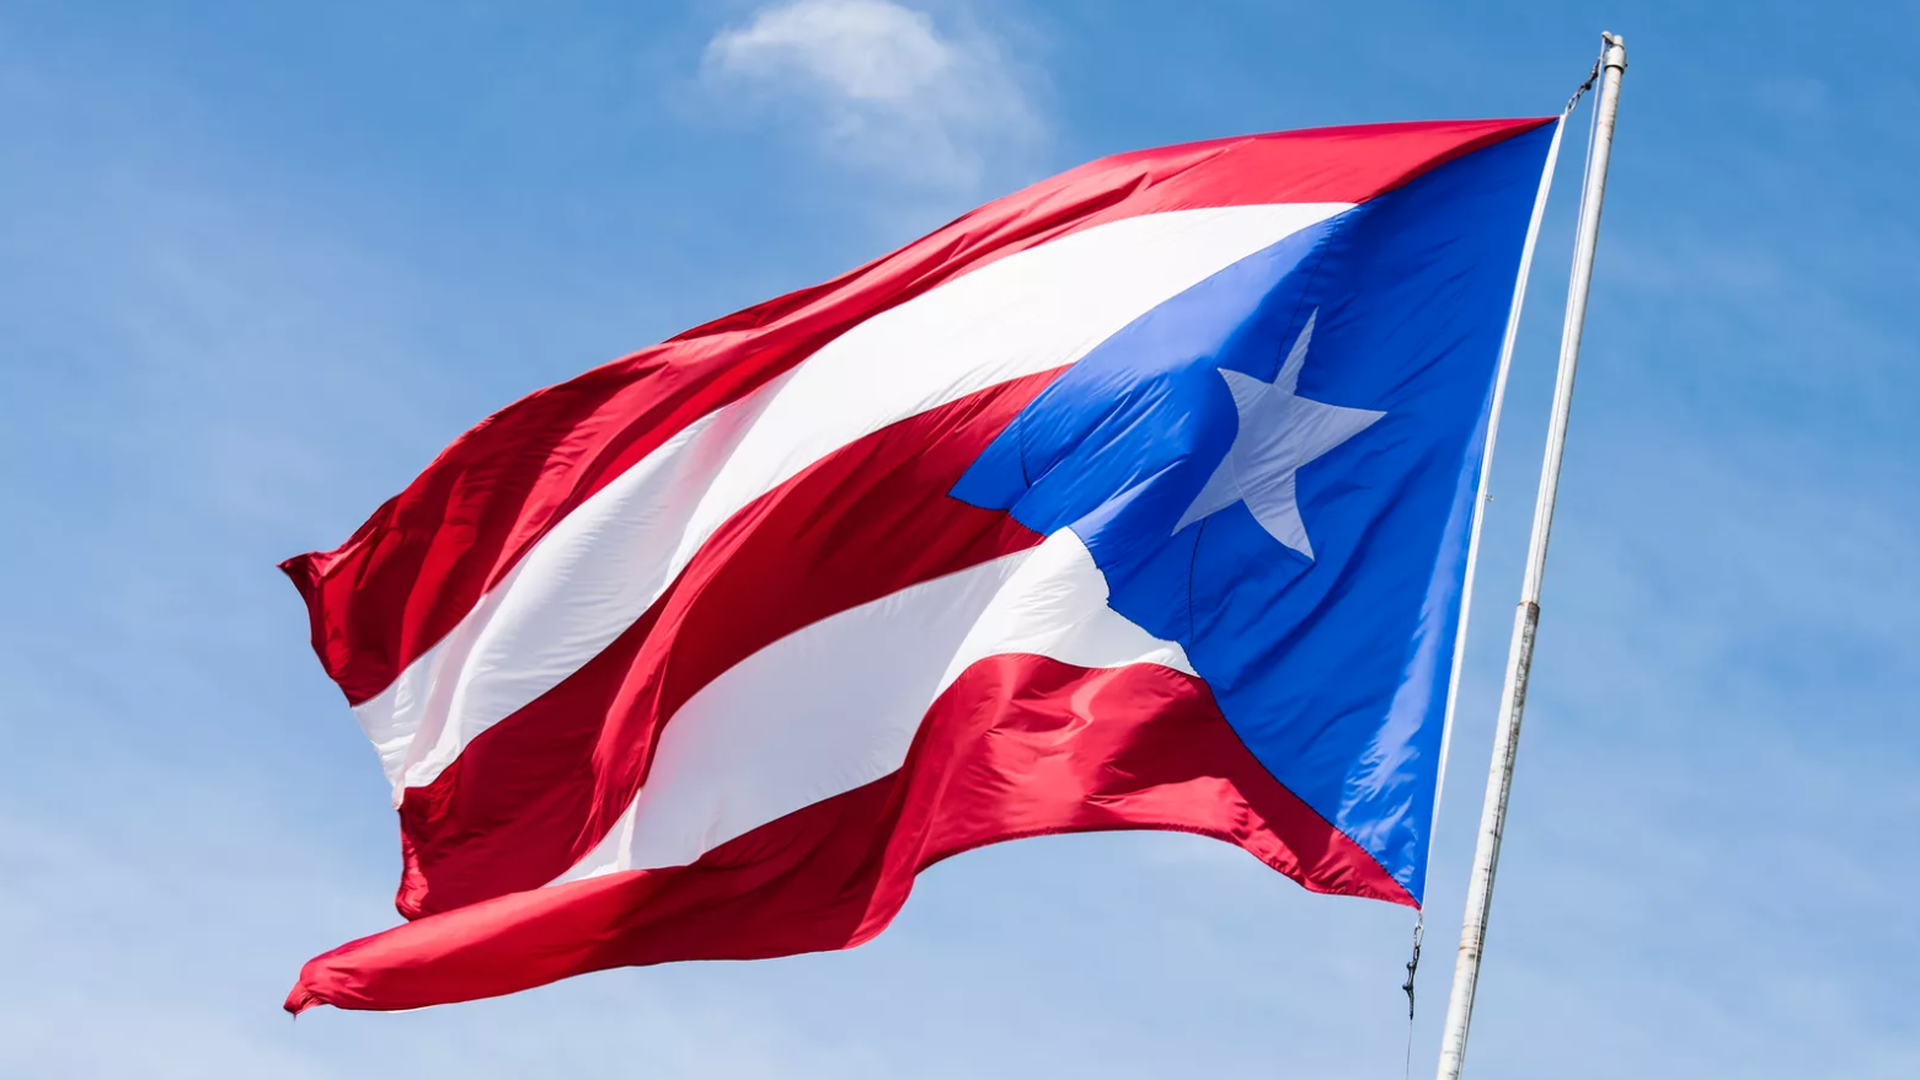 The Puerto Rico flag.